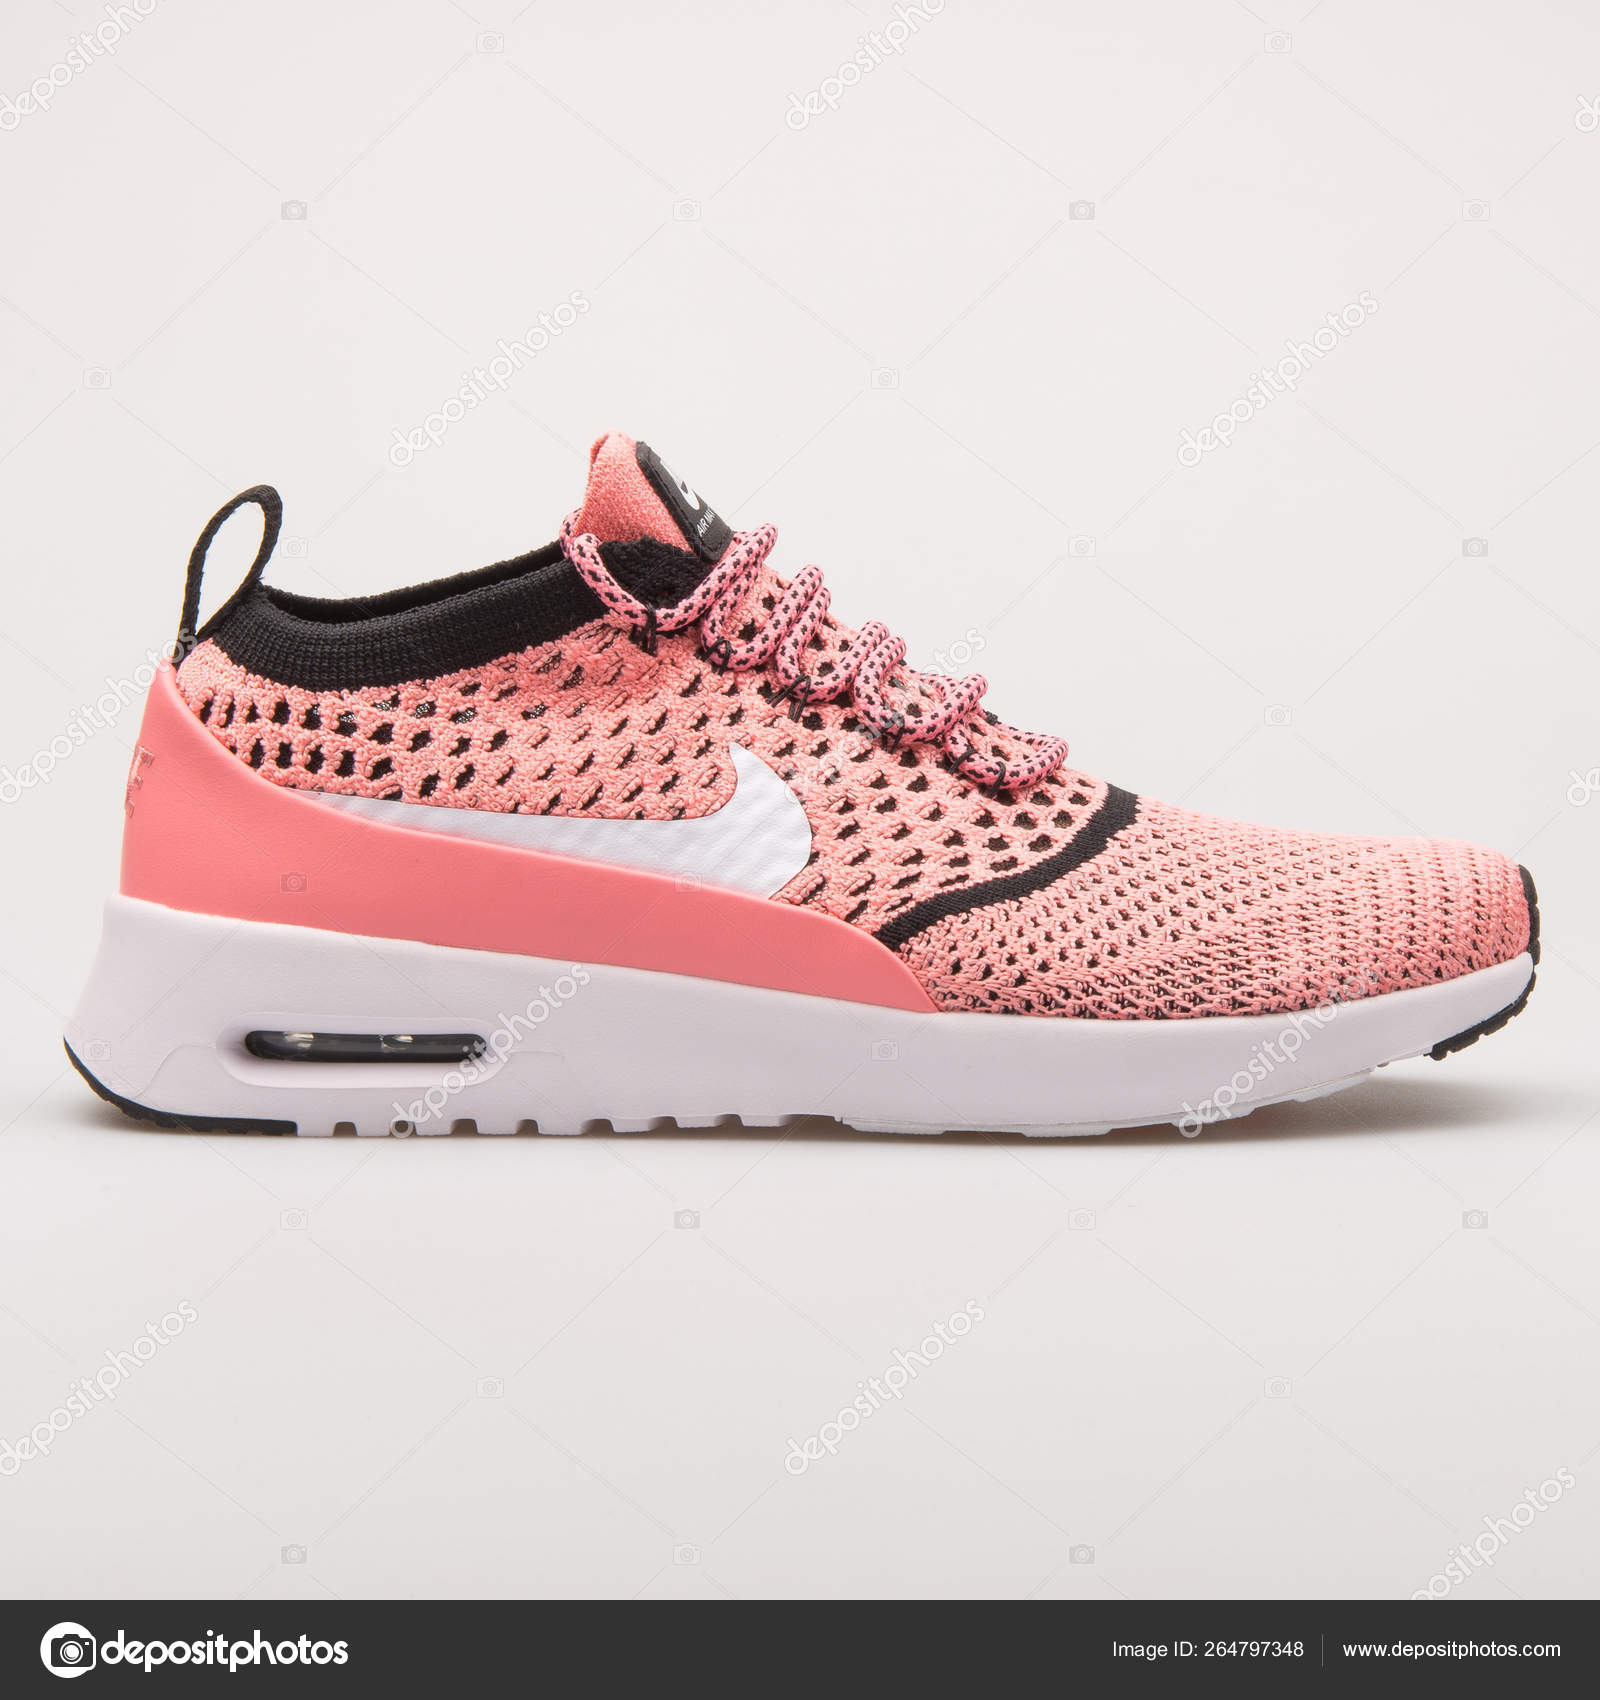 new style 08158 d4b24 Nike Air Max Thea Ultra Flyknit pink sneaker – Stock ...